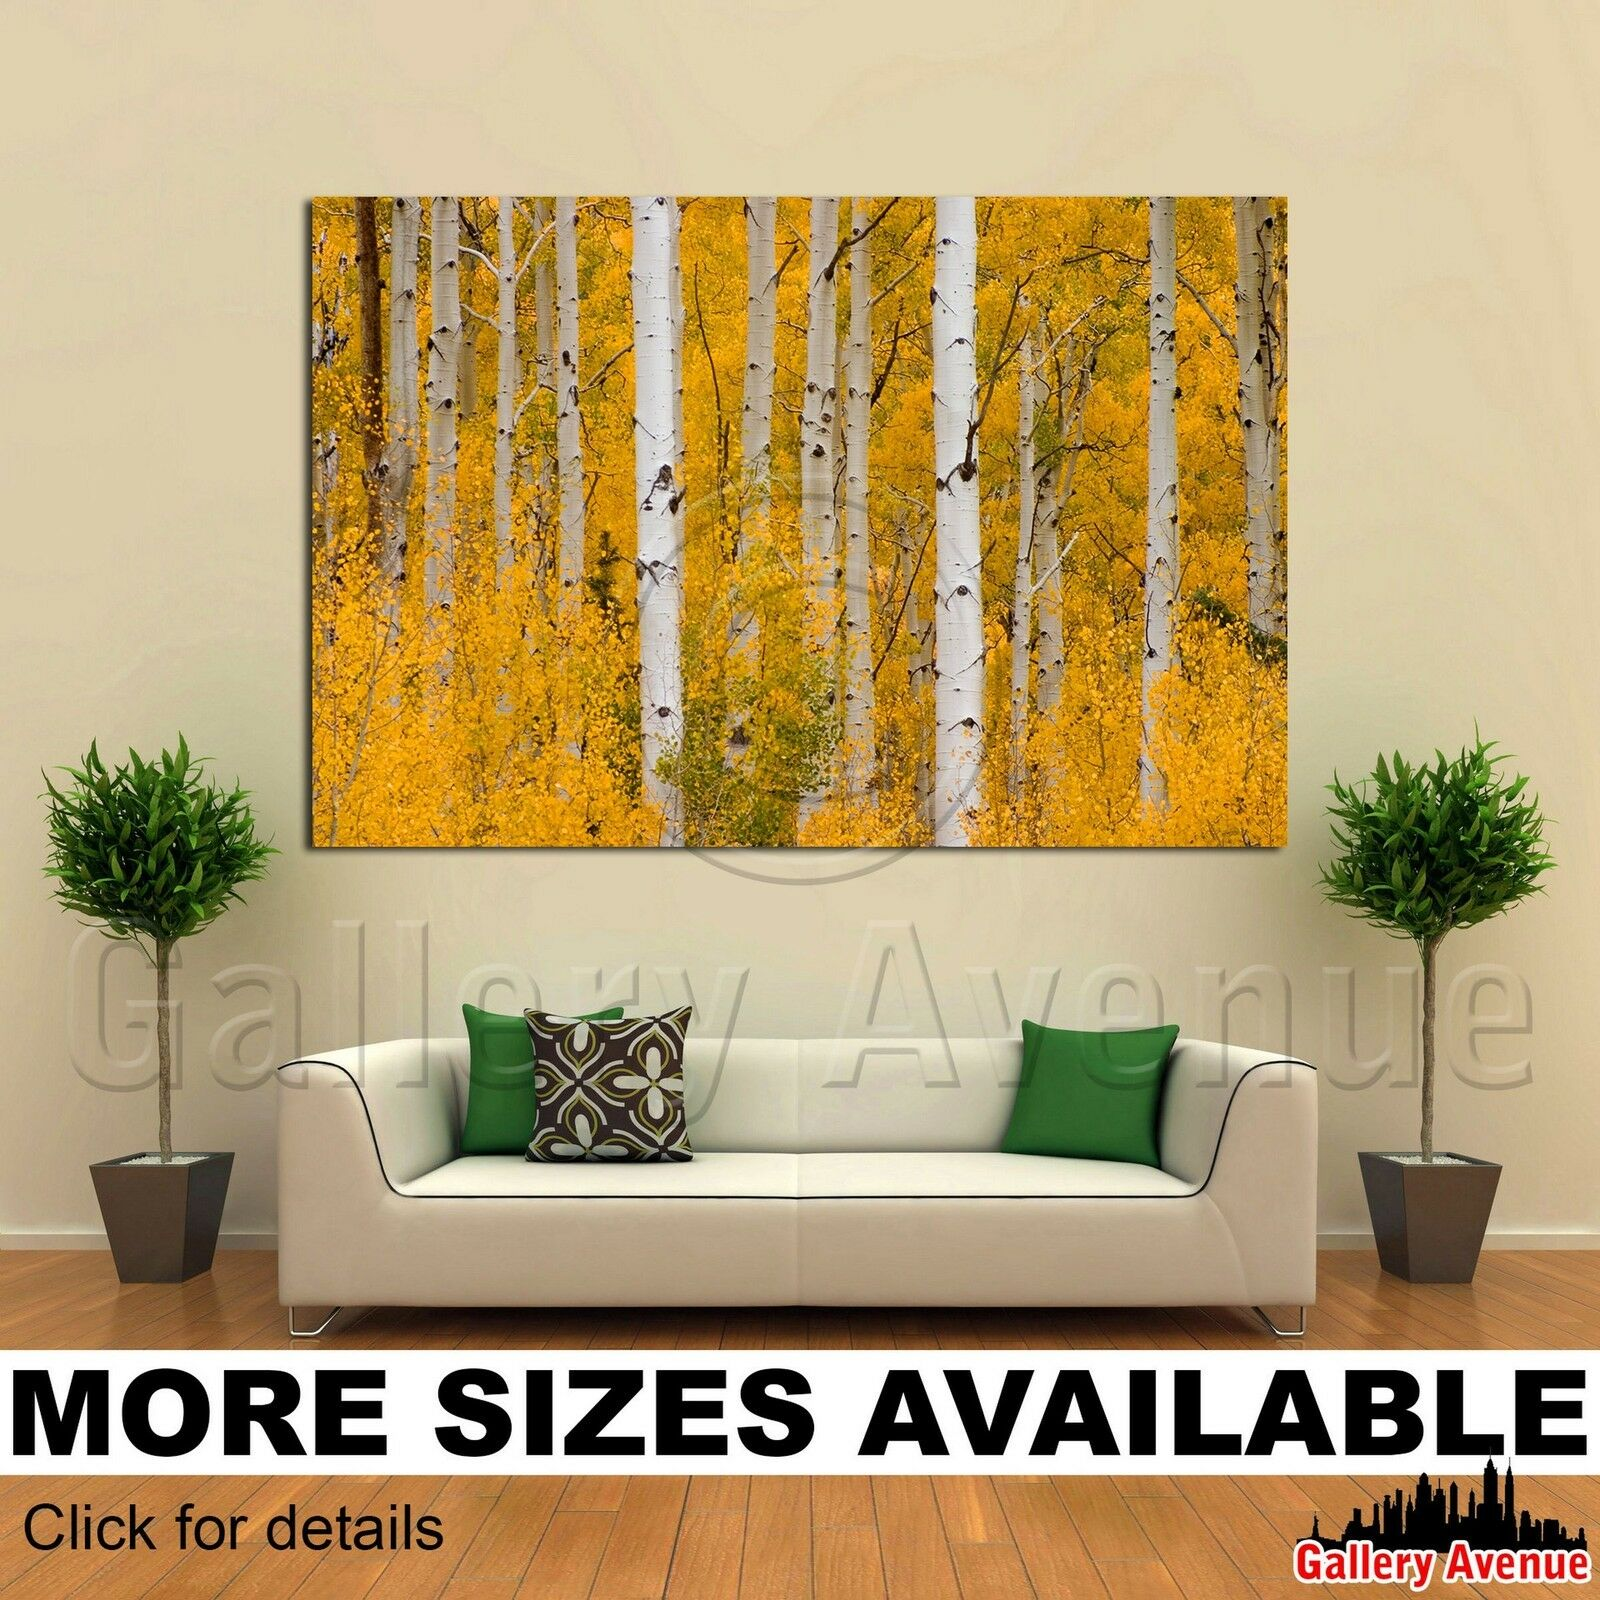 Wall Art Canvas Picture Print - Autumn Leaves Gelb Aspen Trees 3.2